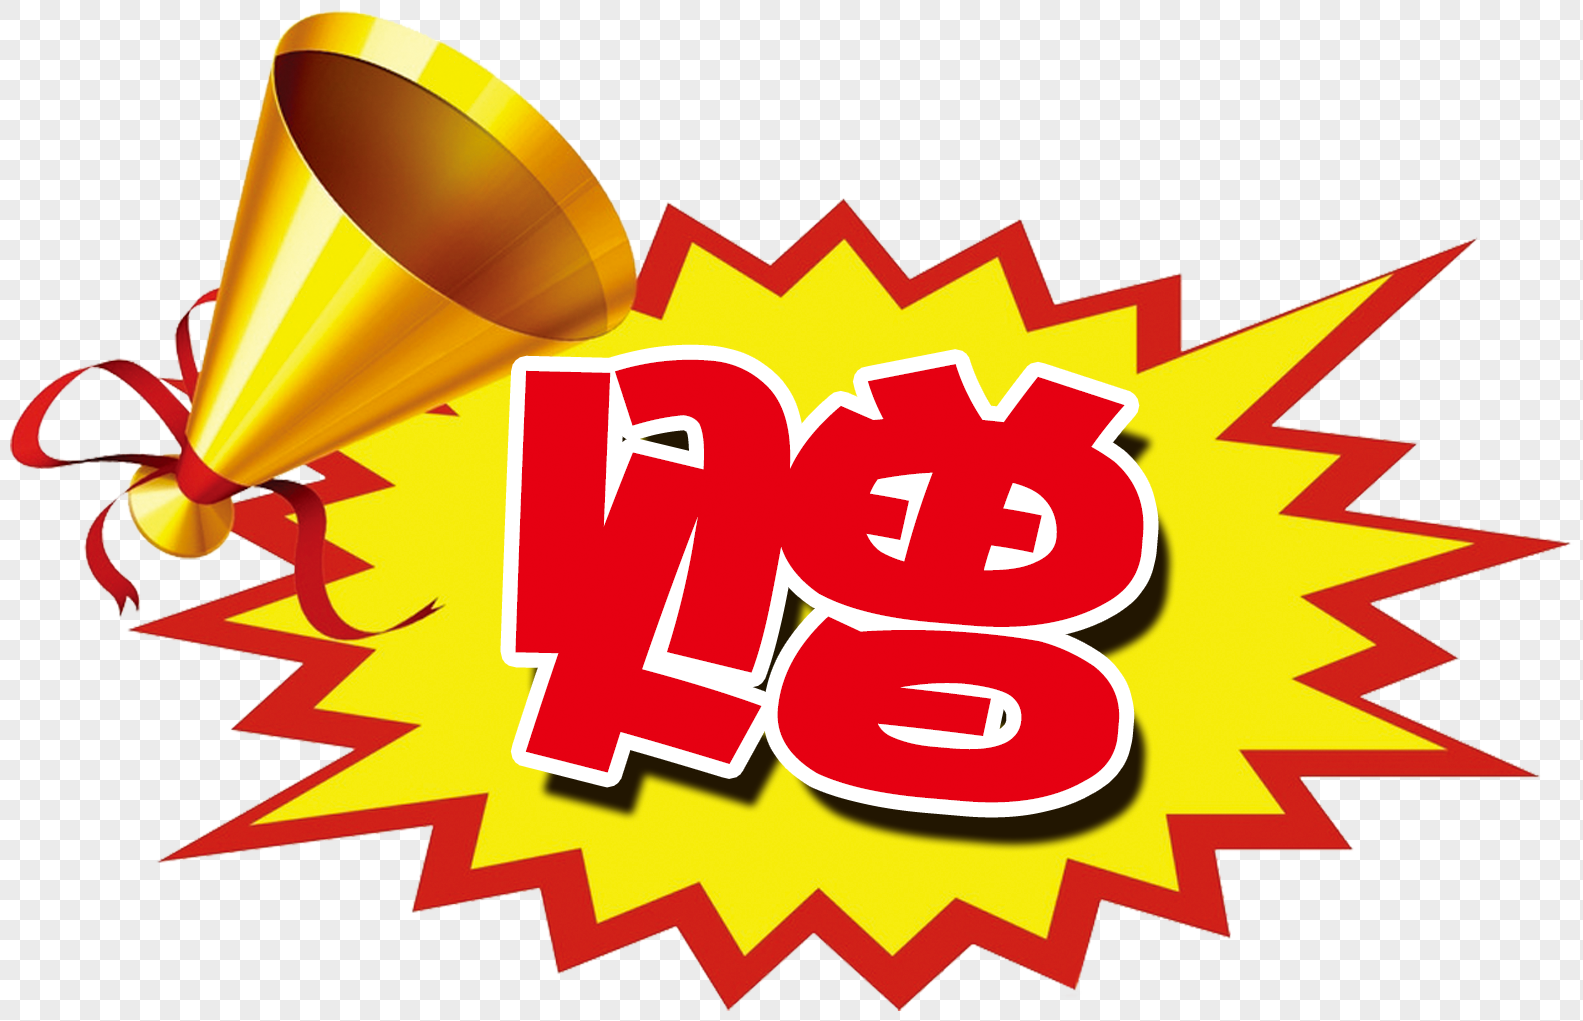 taobao shop promotional gifts labels png image picture free download